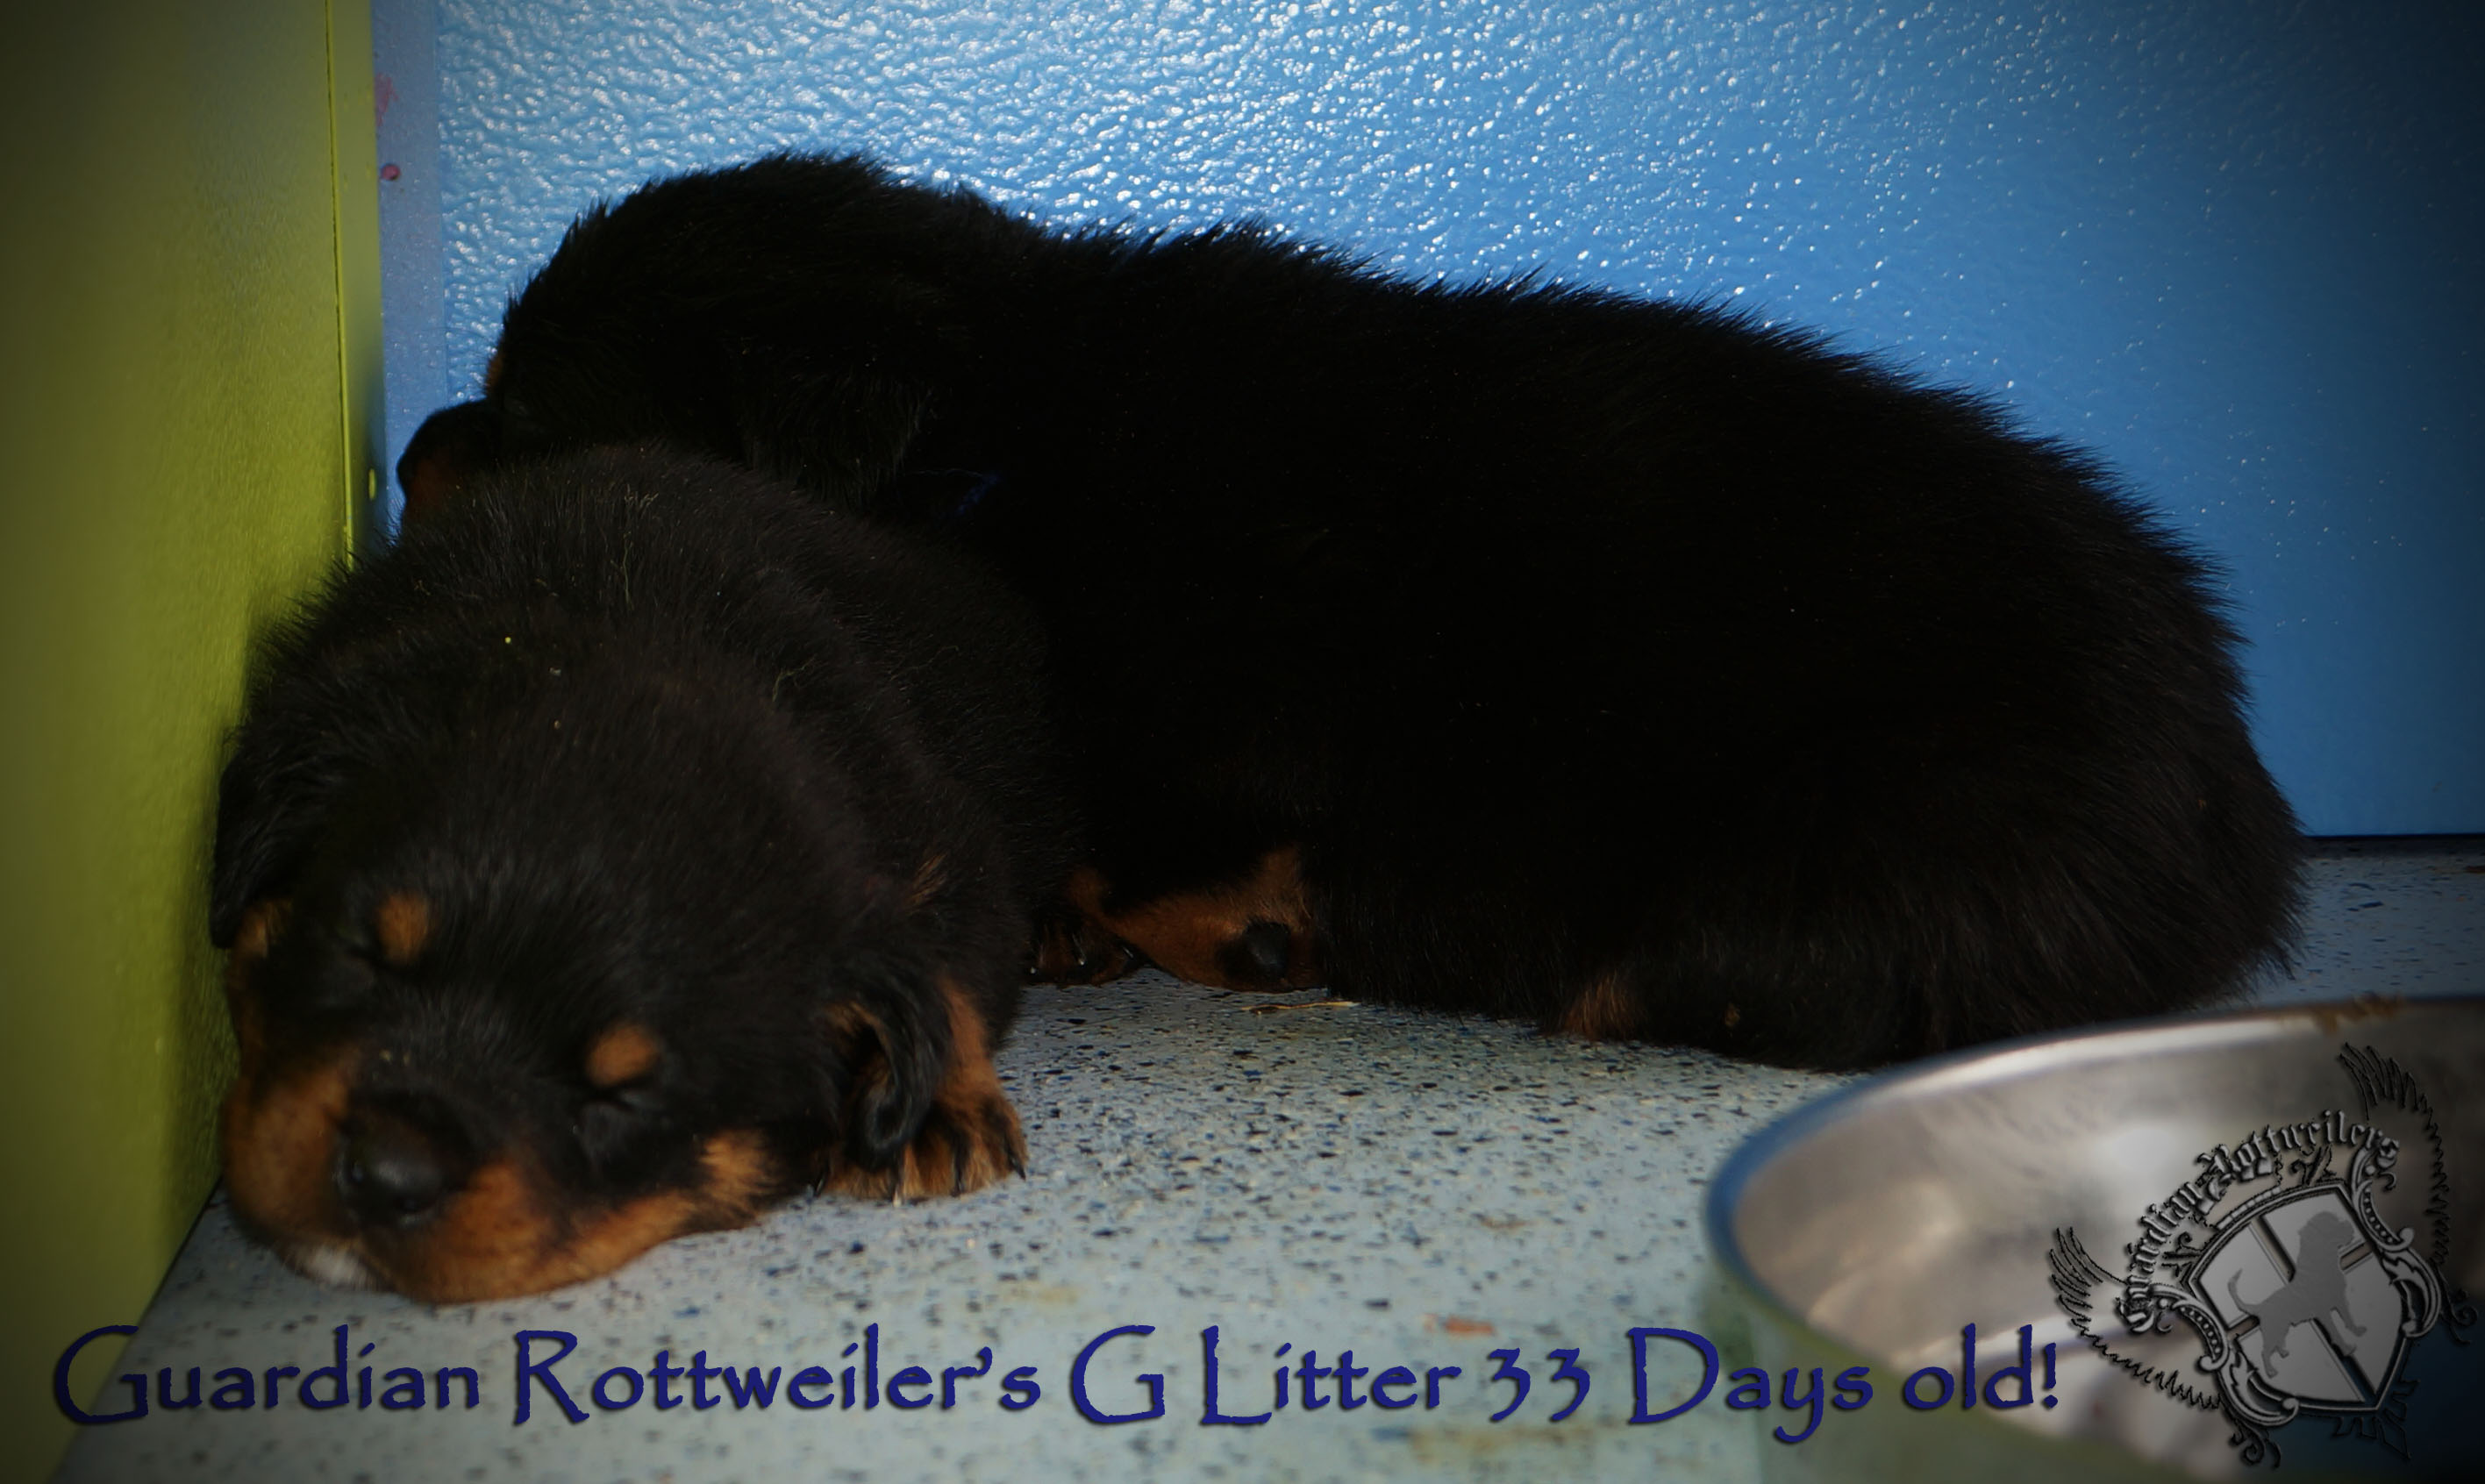 Amazing Rottweiler Chubby Adorable Dog - glitter33days05  Trends_61850  .jpg